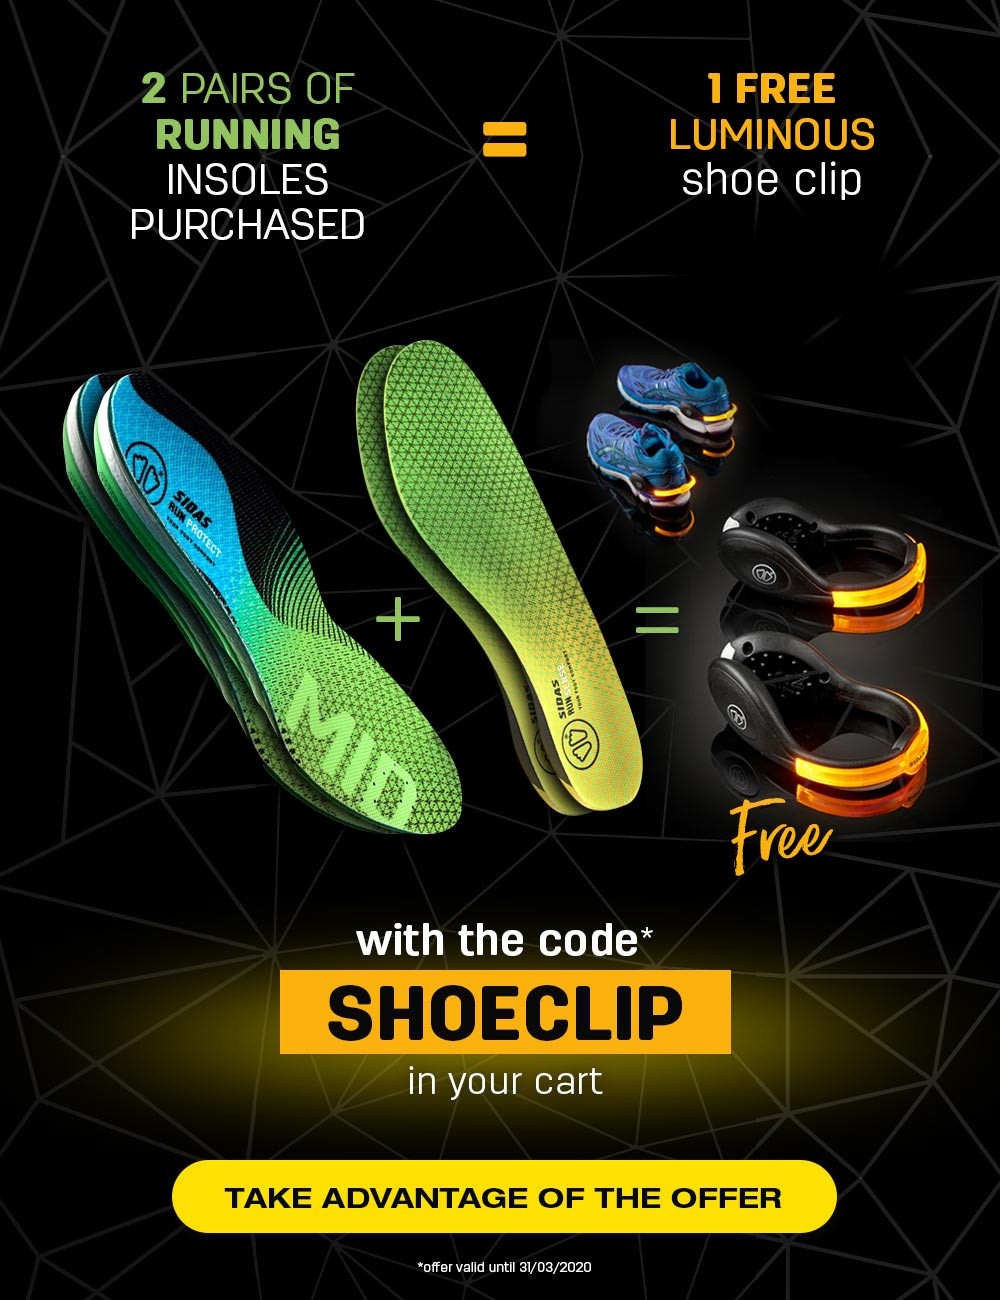 Buy 2 pairs of running insoles and get your FREE luminous shoe clip